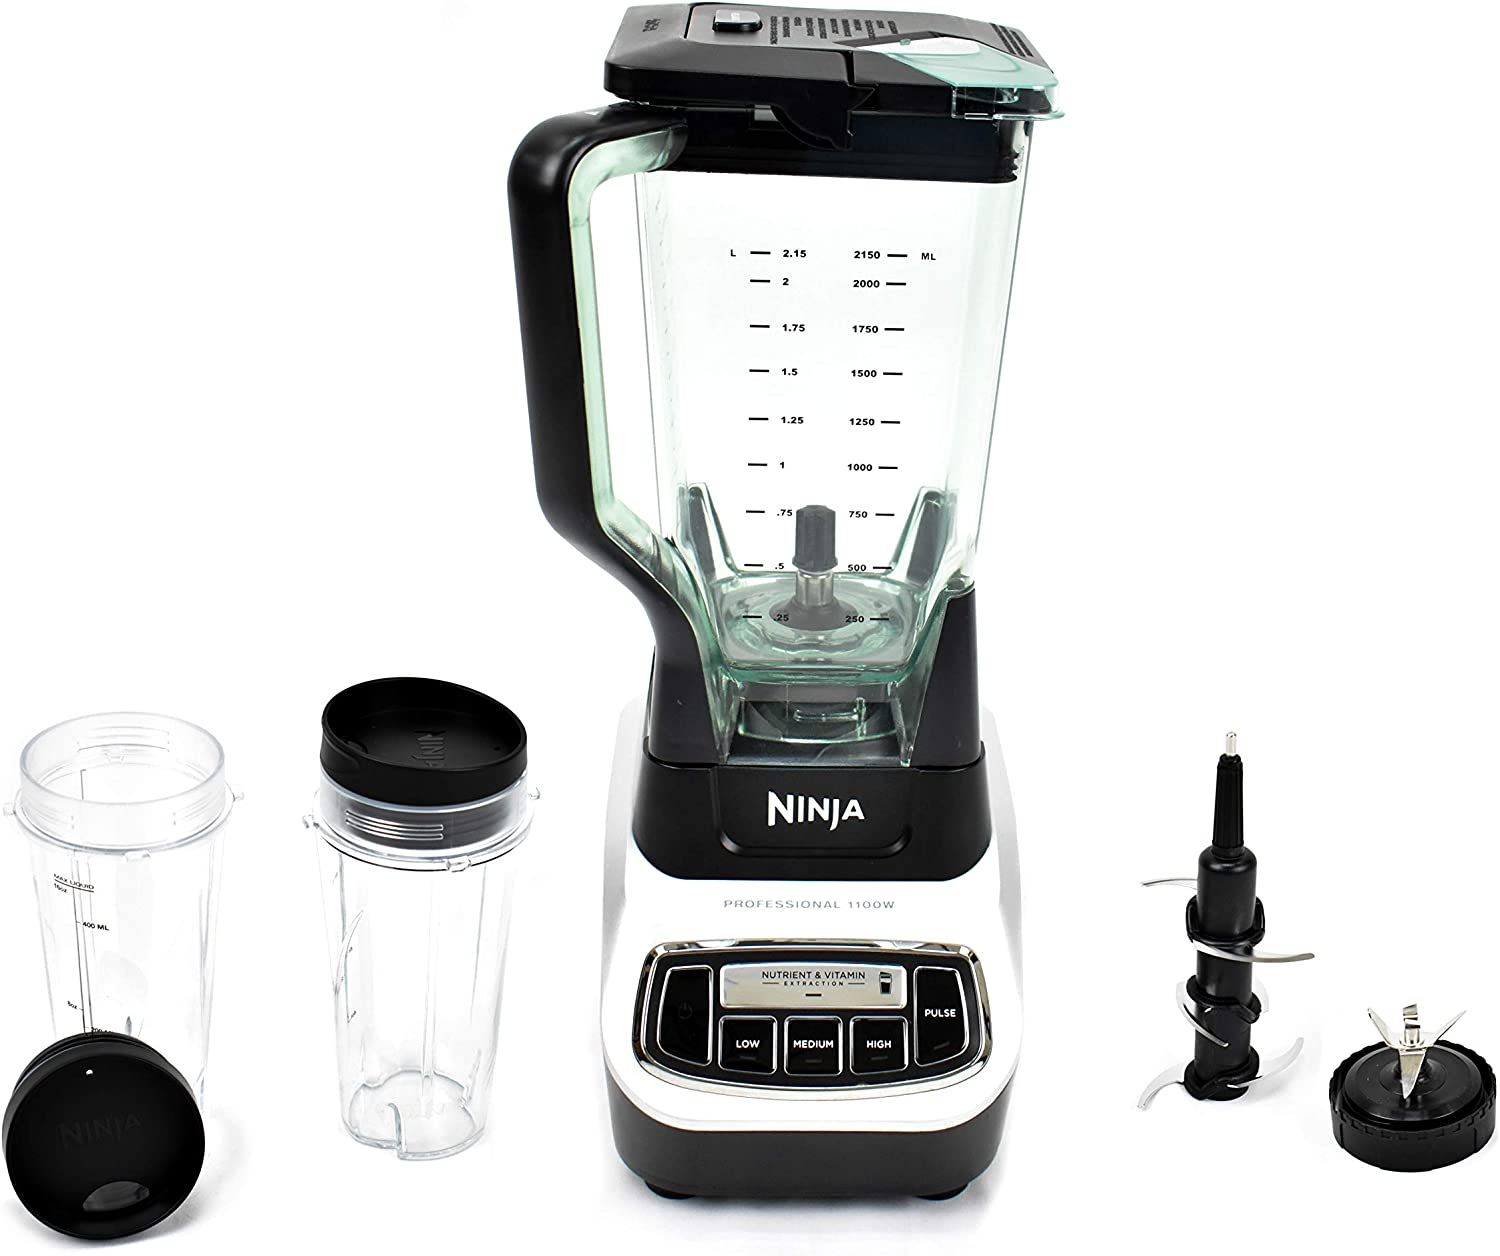 Renewed Ninja/ Professional Blender System and Nutri Ninja/ with Single Serve Cups and XL Pitcher 1100-Watt Motor Base Total Crushing 6 Blade Fin Assembly BL621